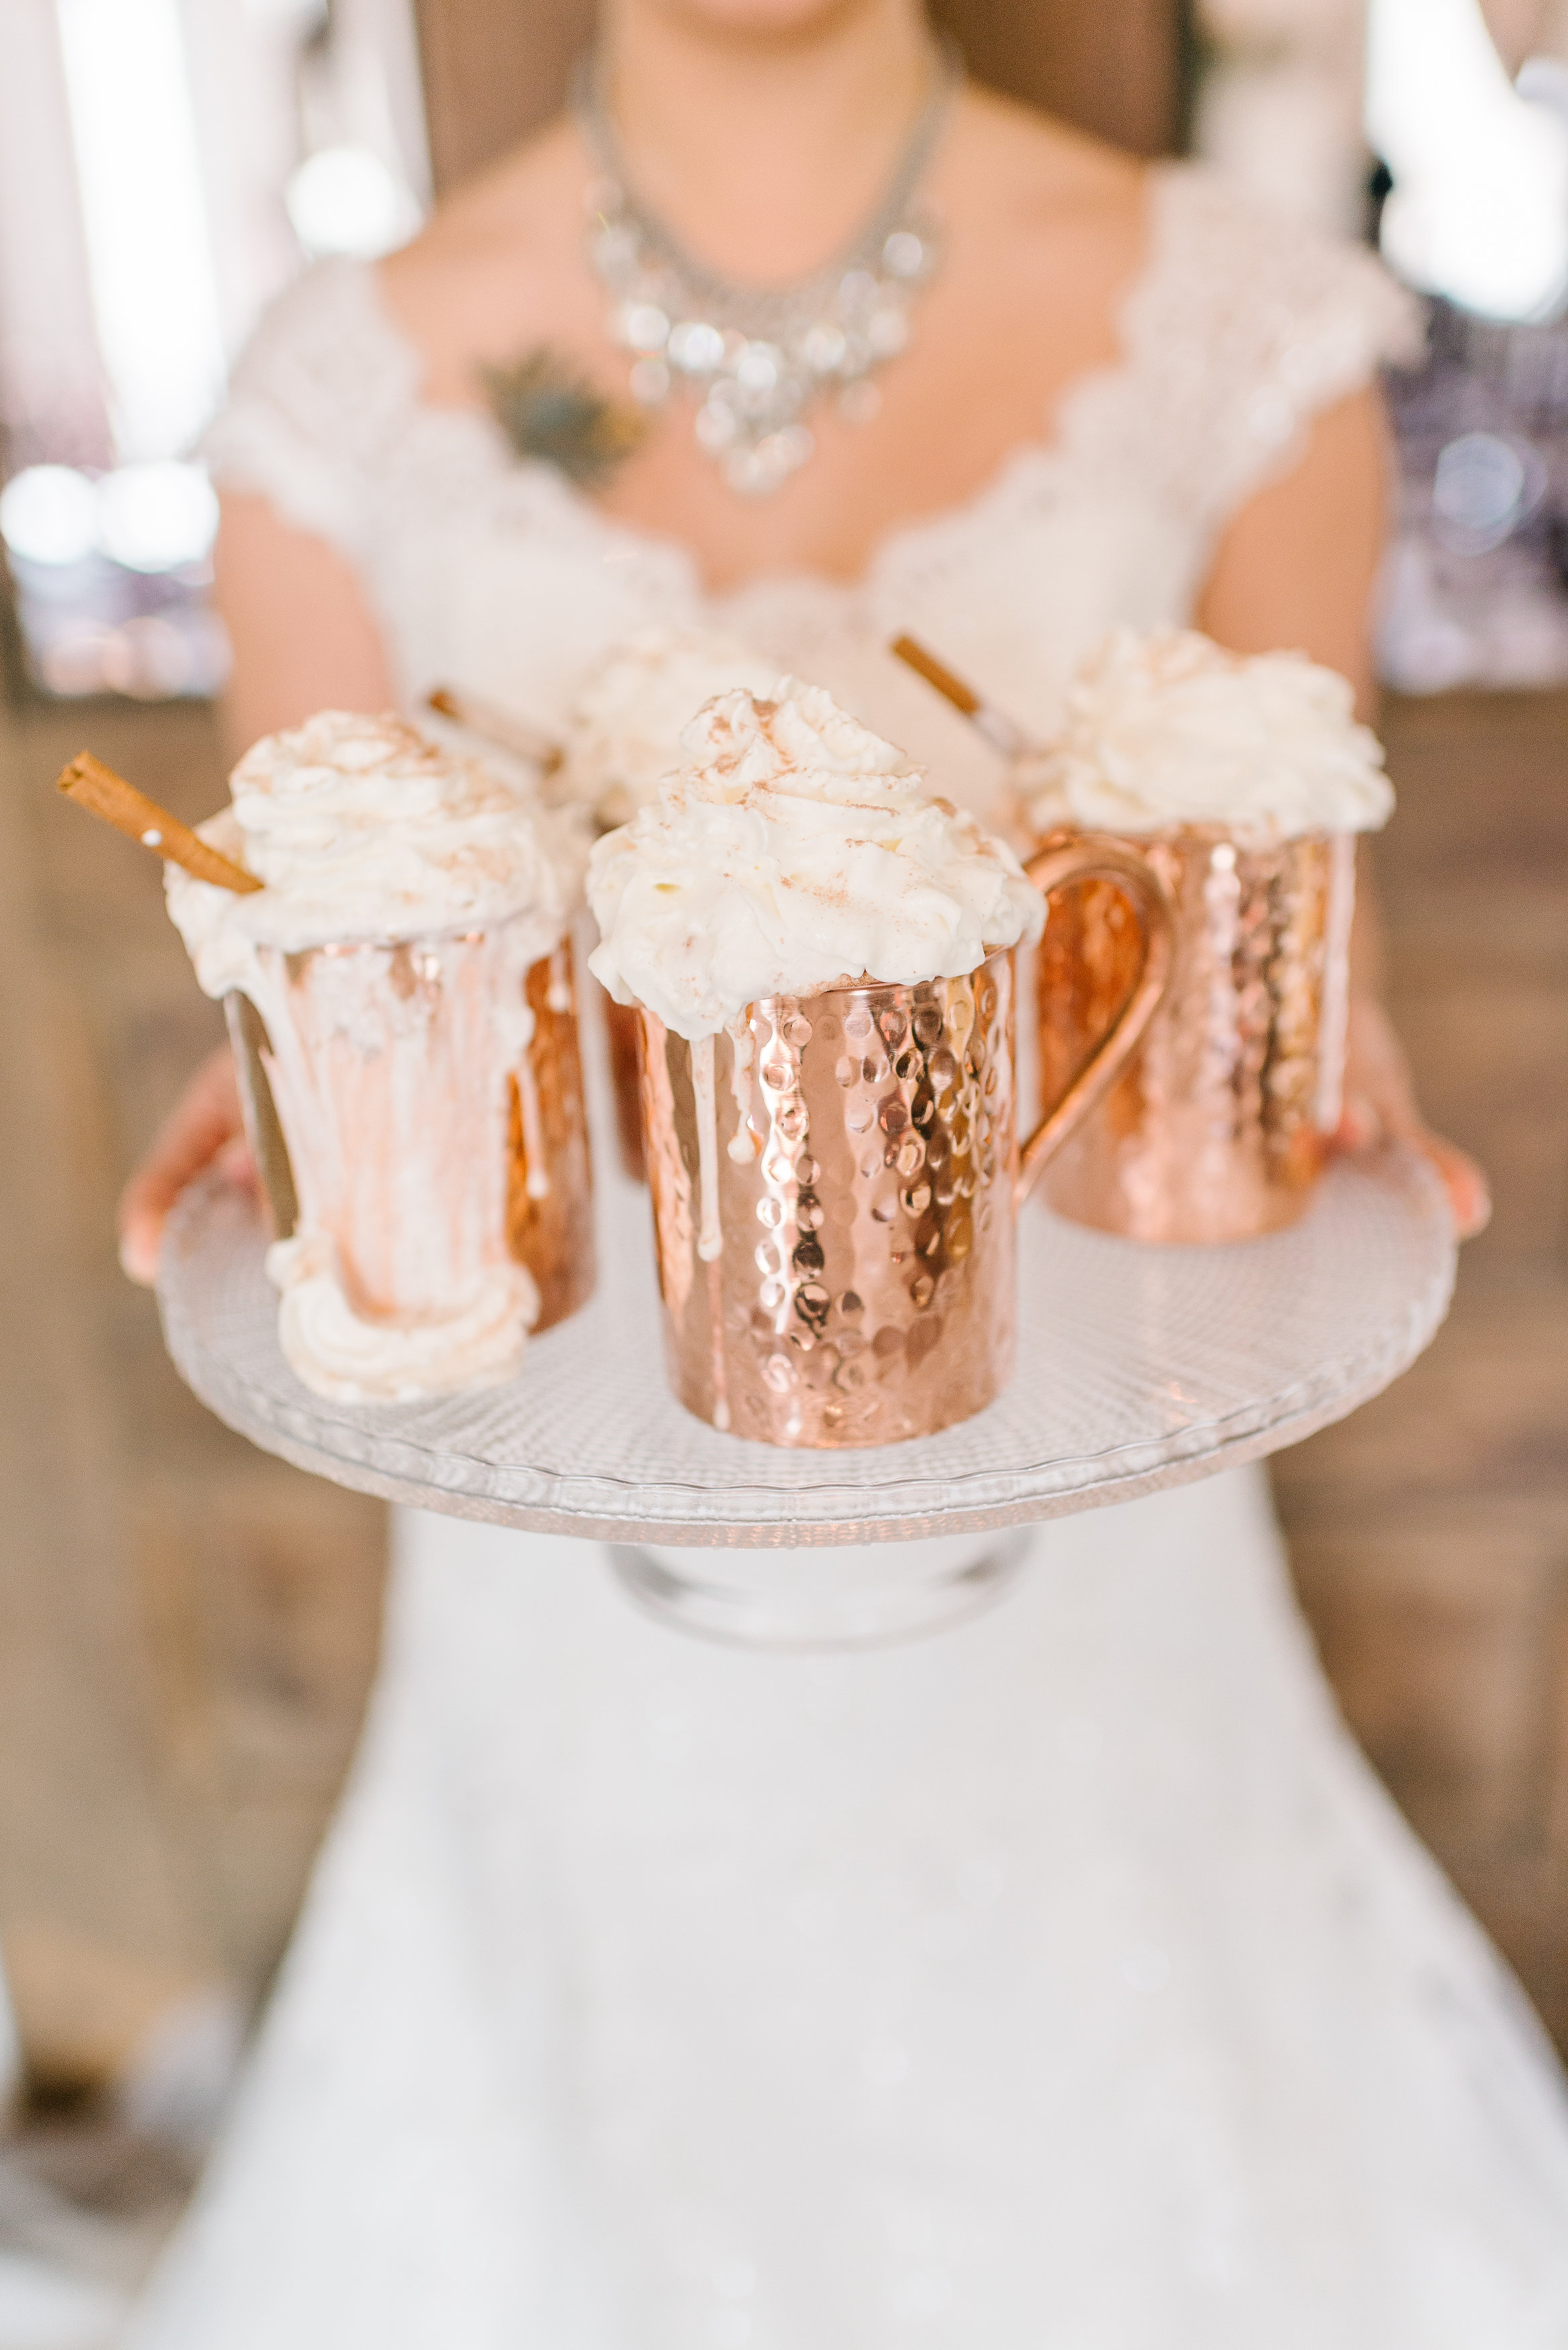 Hot Chocolate in Copper Mugs, Hot Drink Stations